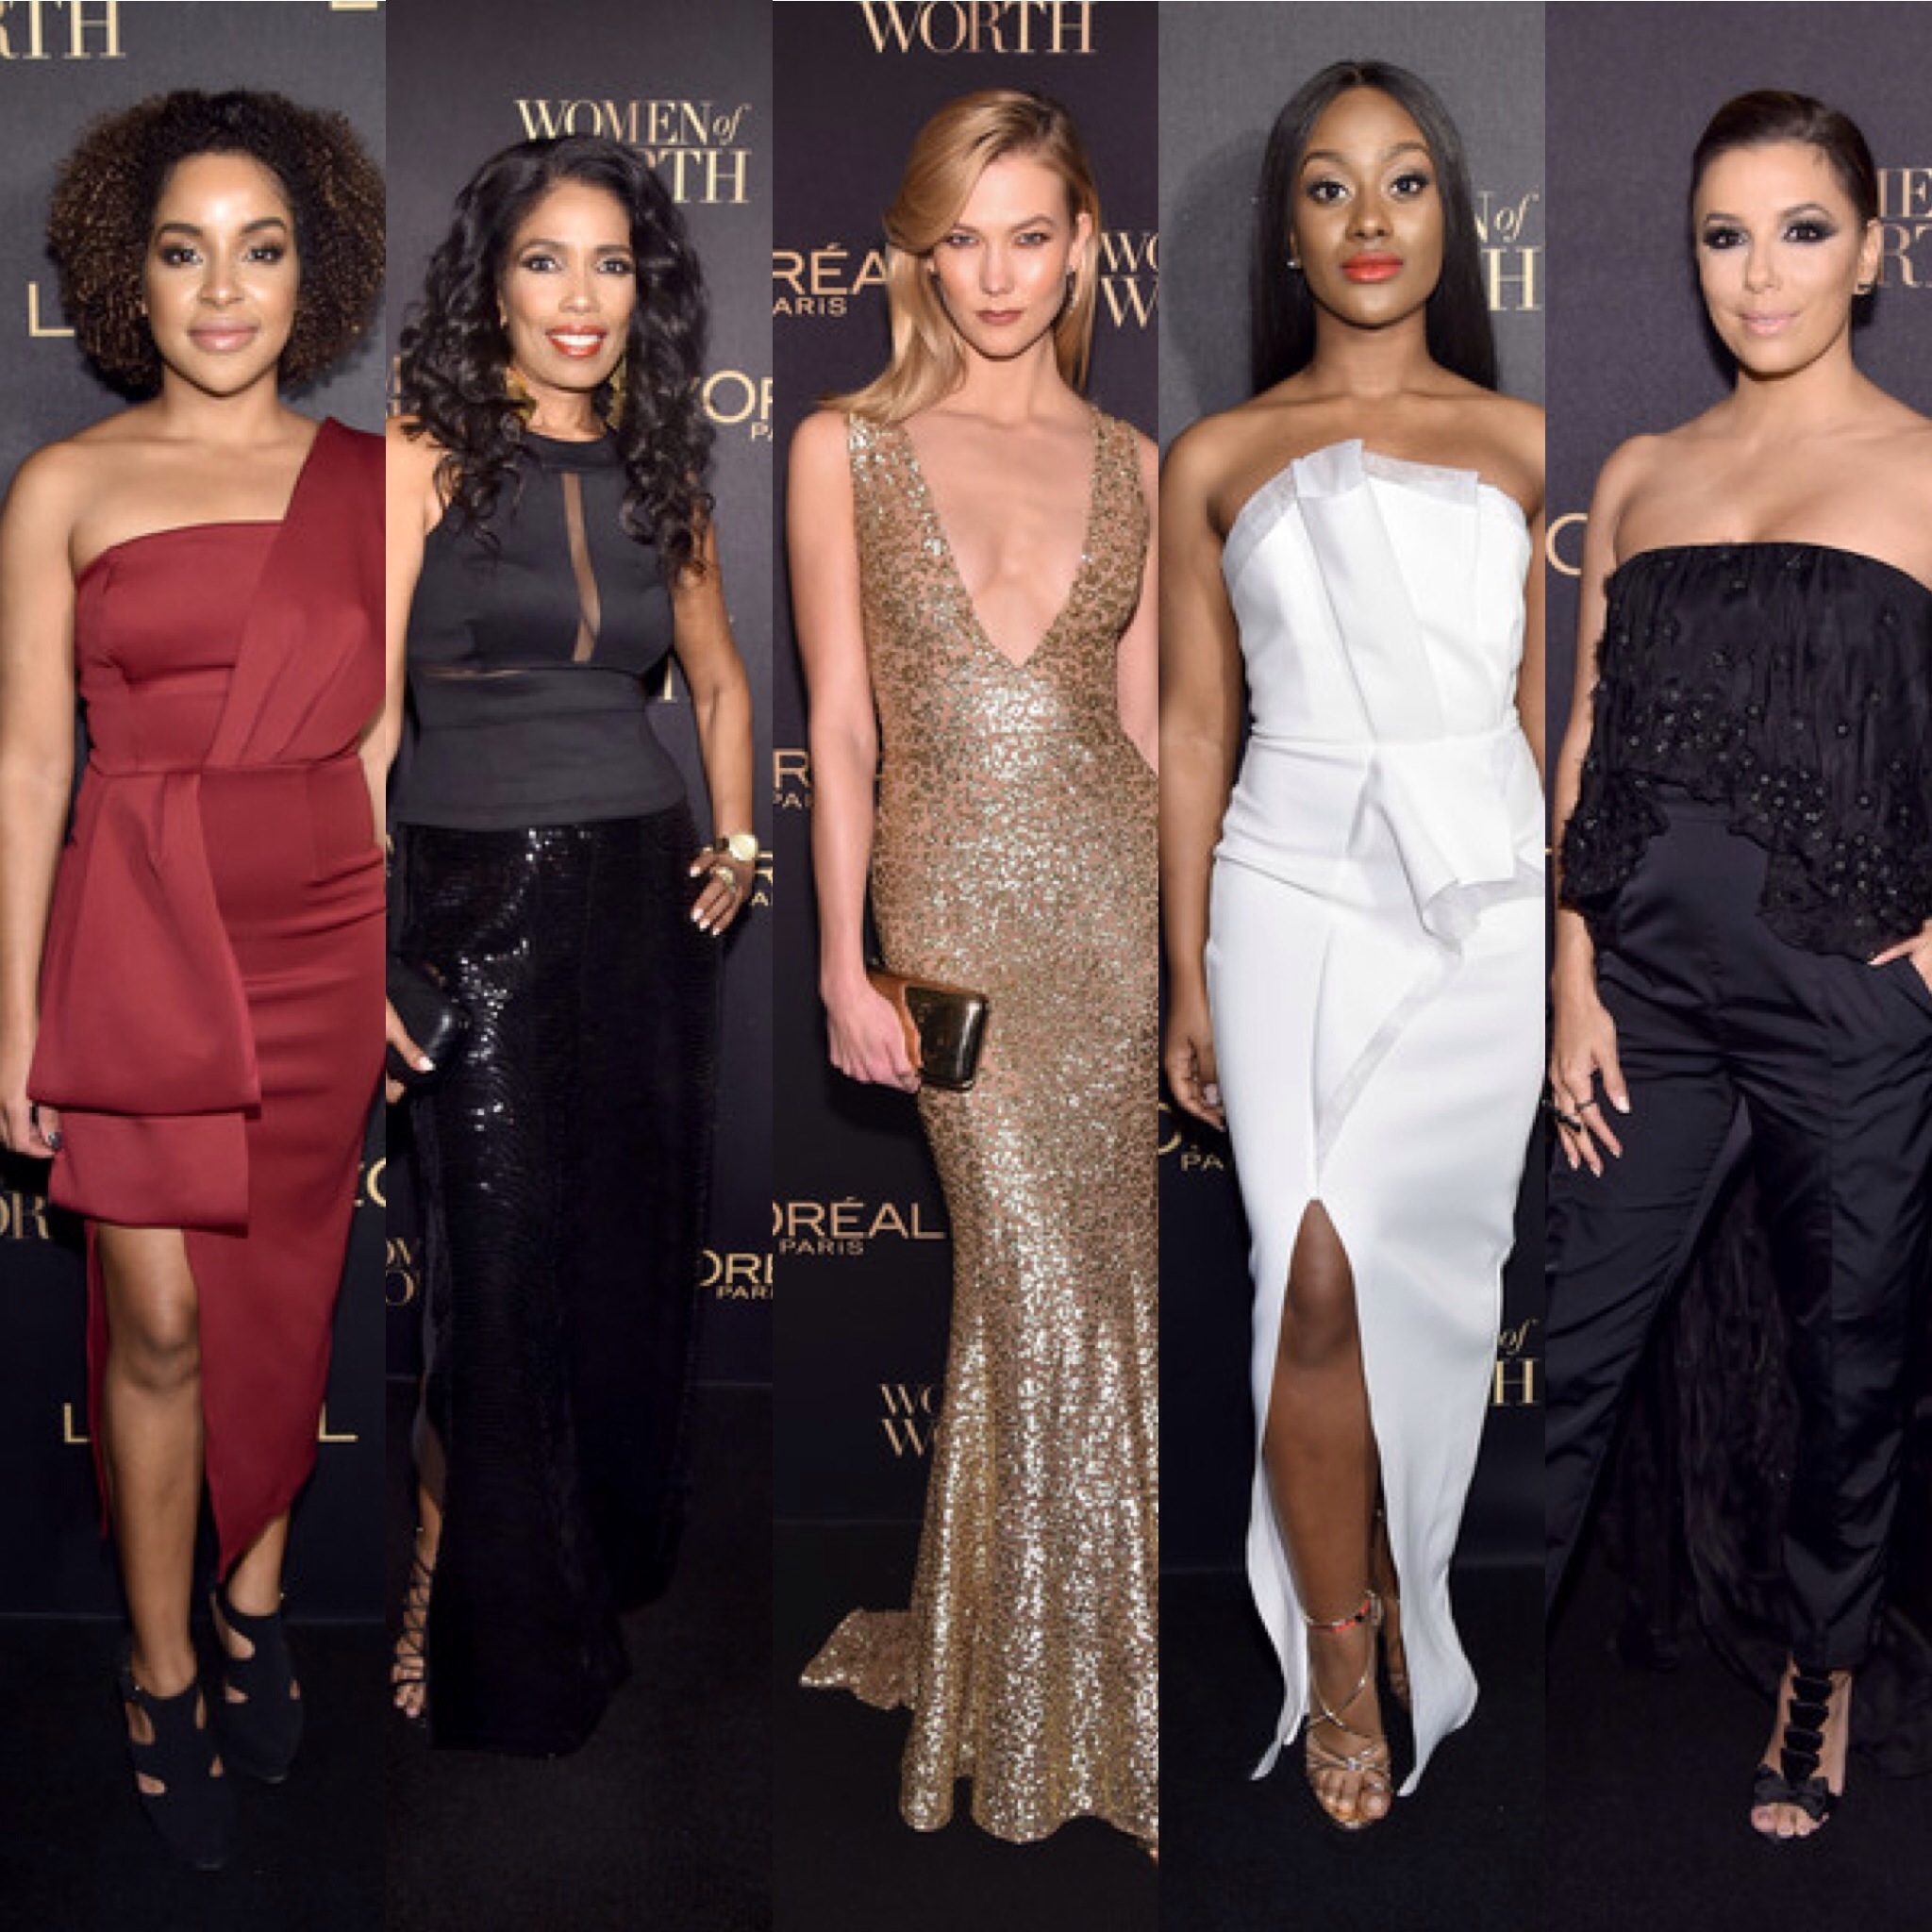 L'Oreal Paris Women of Worth Celebration 2016 in New York City